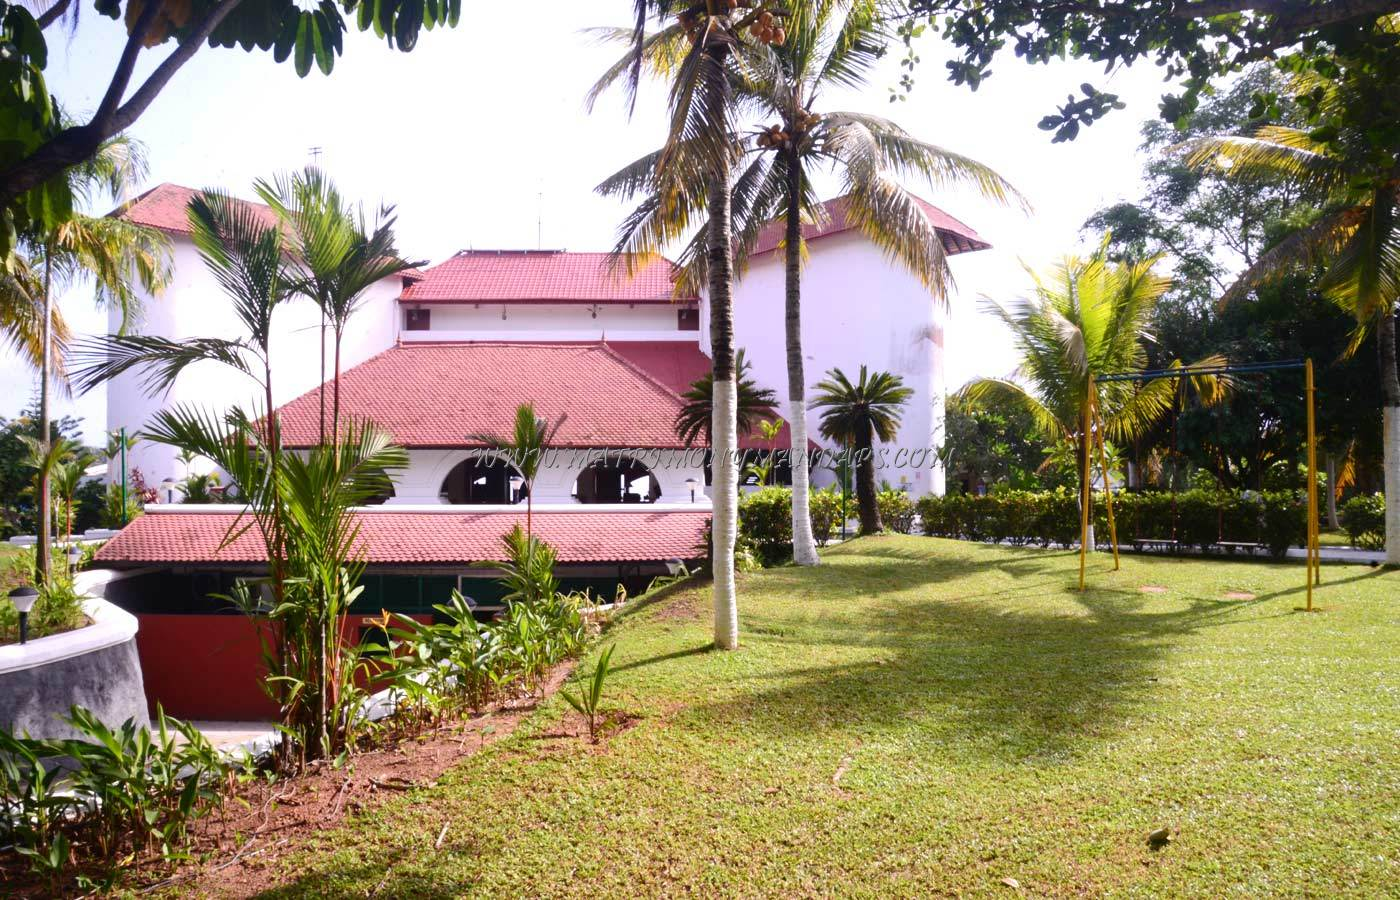 Find the availability of the The Gateway Hotel Open Spe 2 in Varkala, Trivandrum and avail special offers